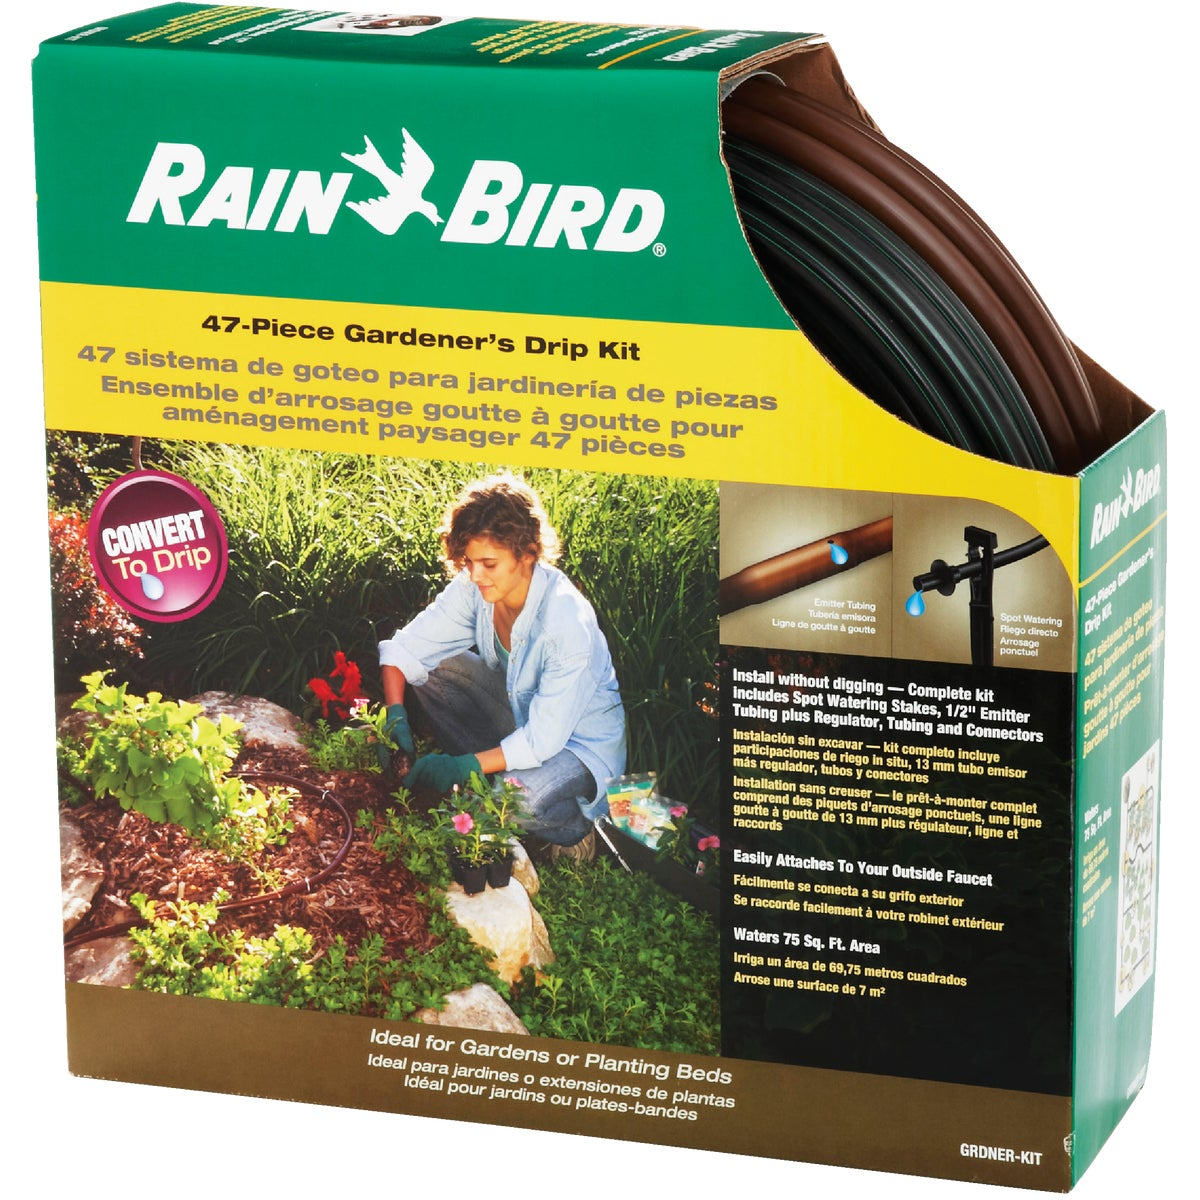 GARDENERS DRIP KIT - GRDNER-KIT by Rain Bird Corp Consu